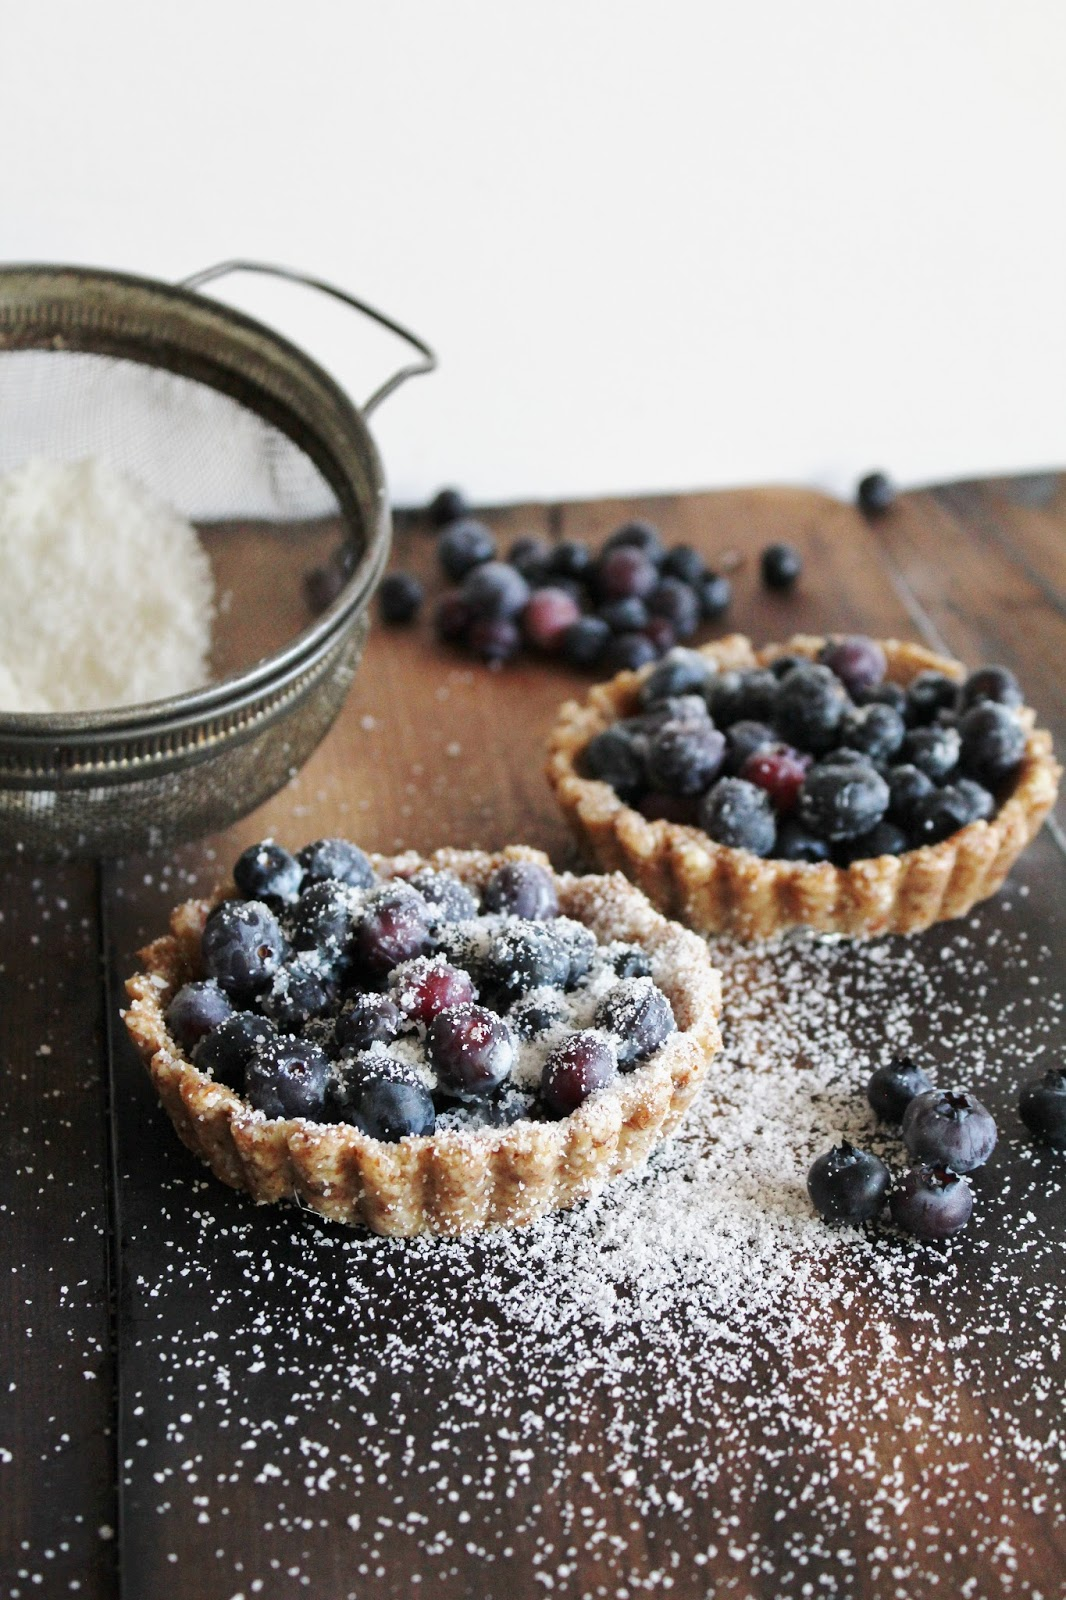 Blueberry Tarts For Two from This Rawsome Vegan Life